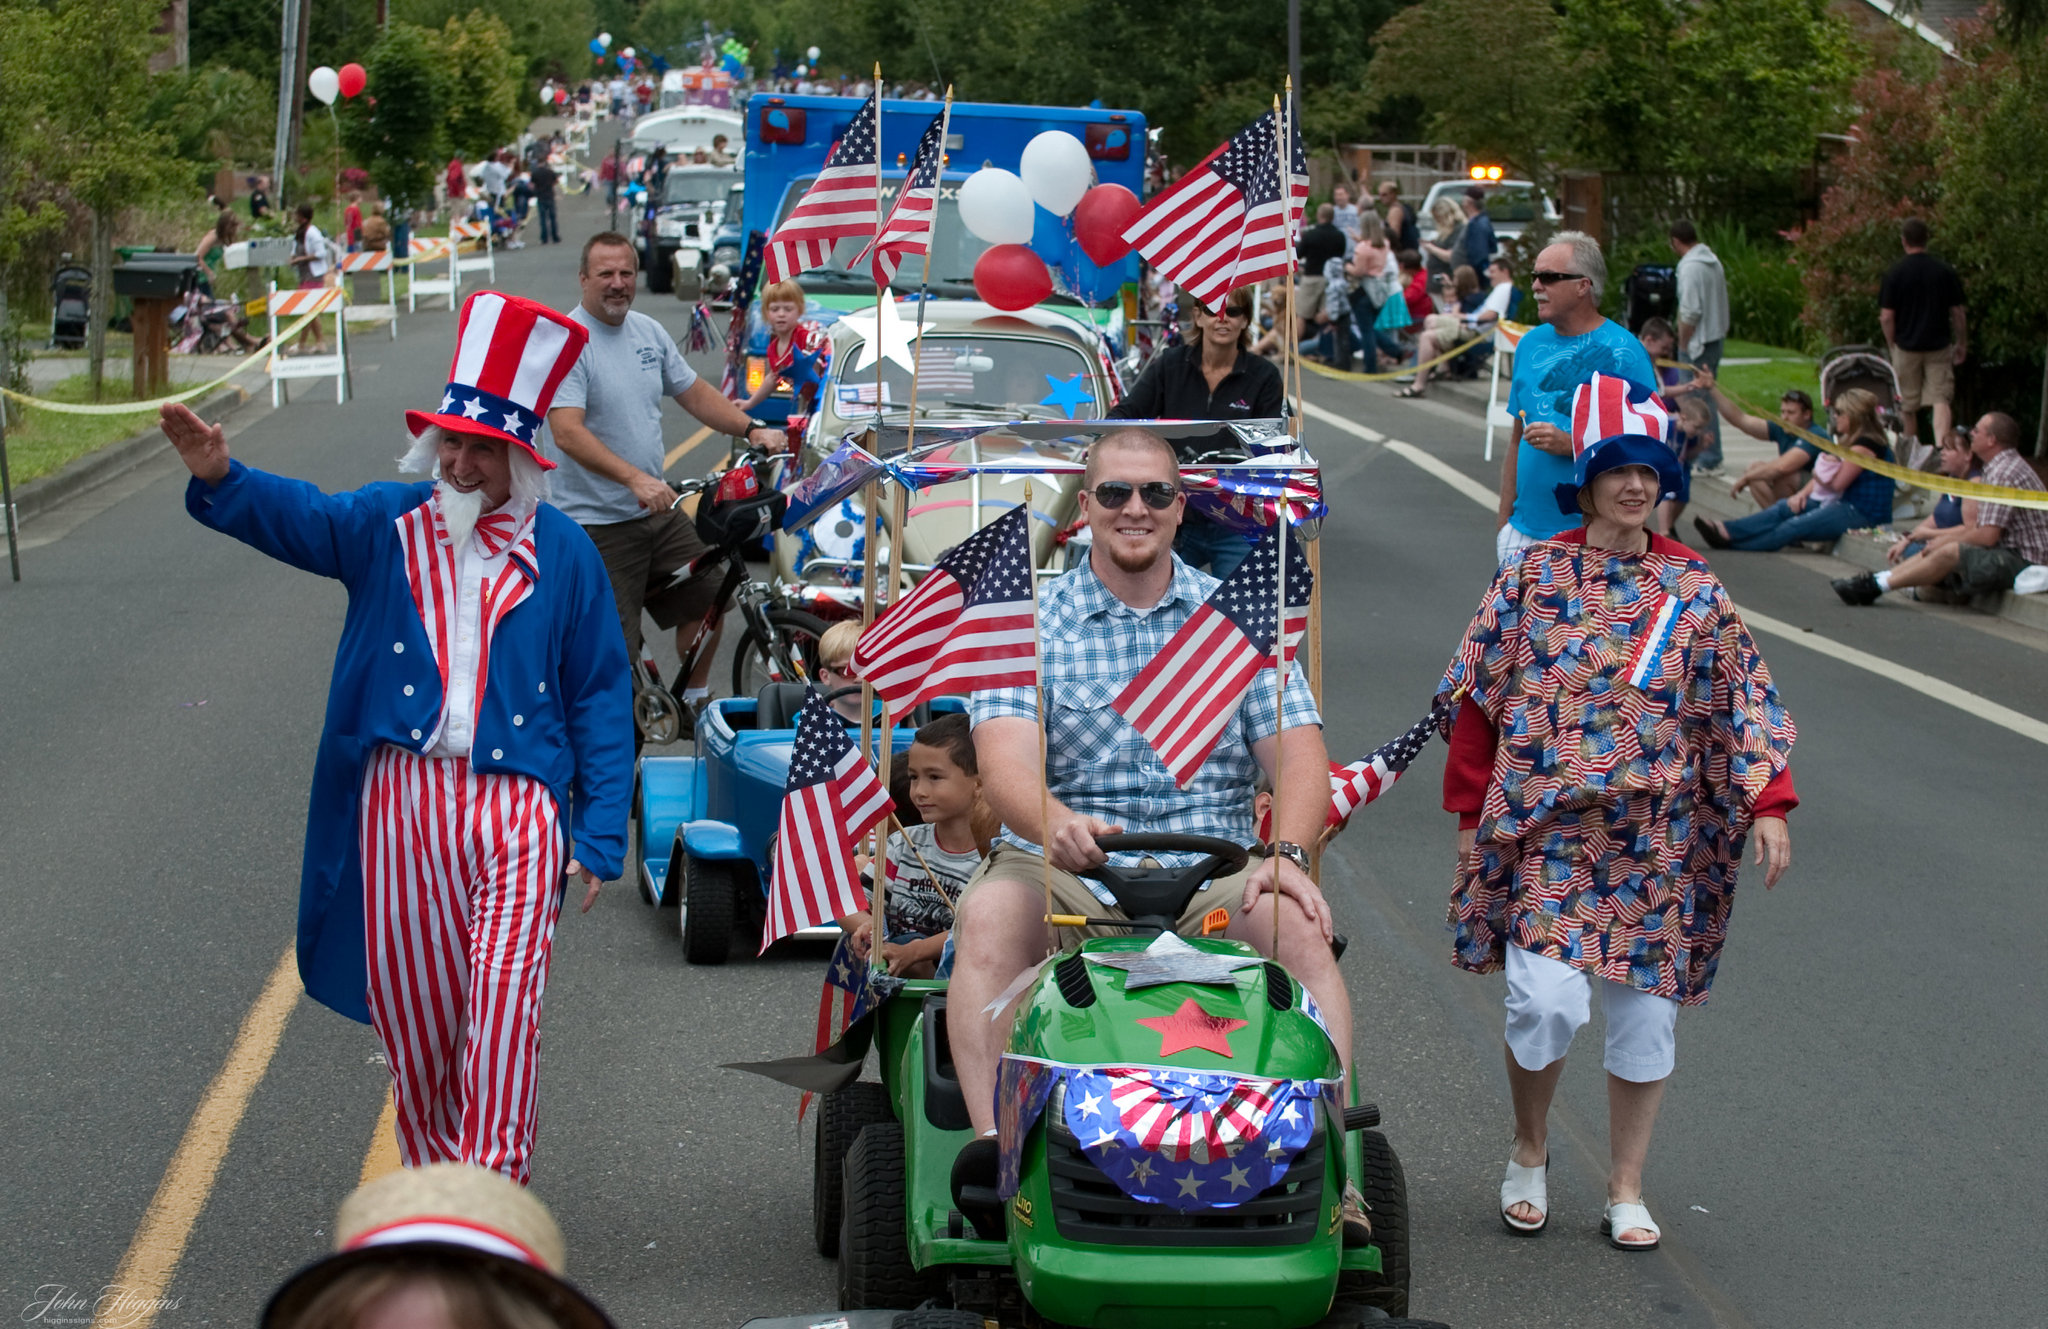 Fourth of july faqs for foreigners expat claptrap for What is celebrated on the 4th of july